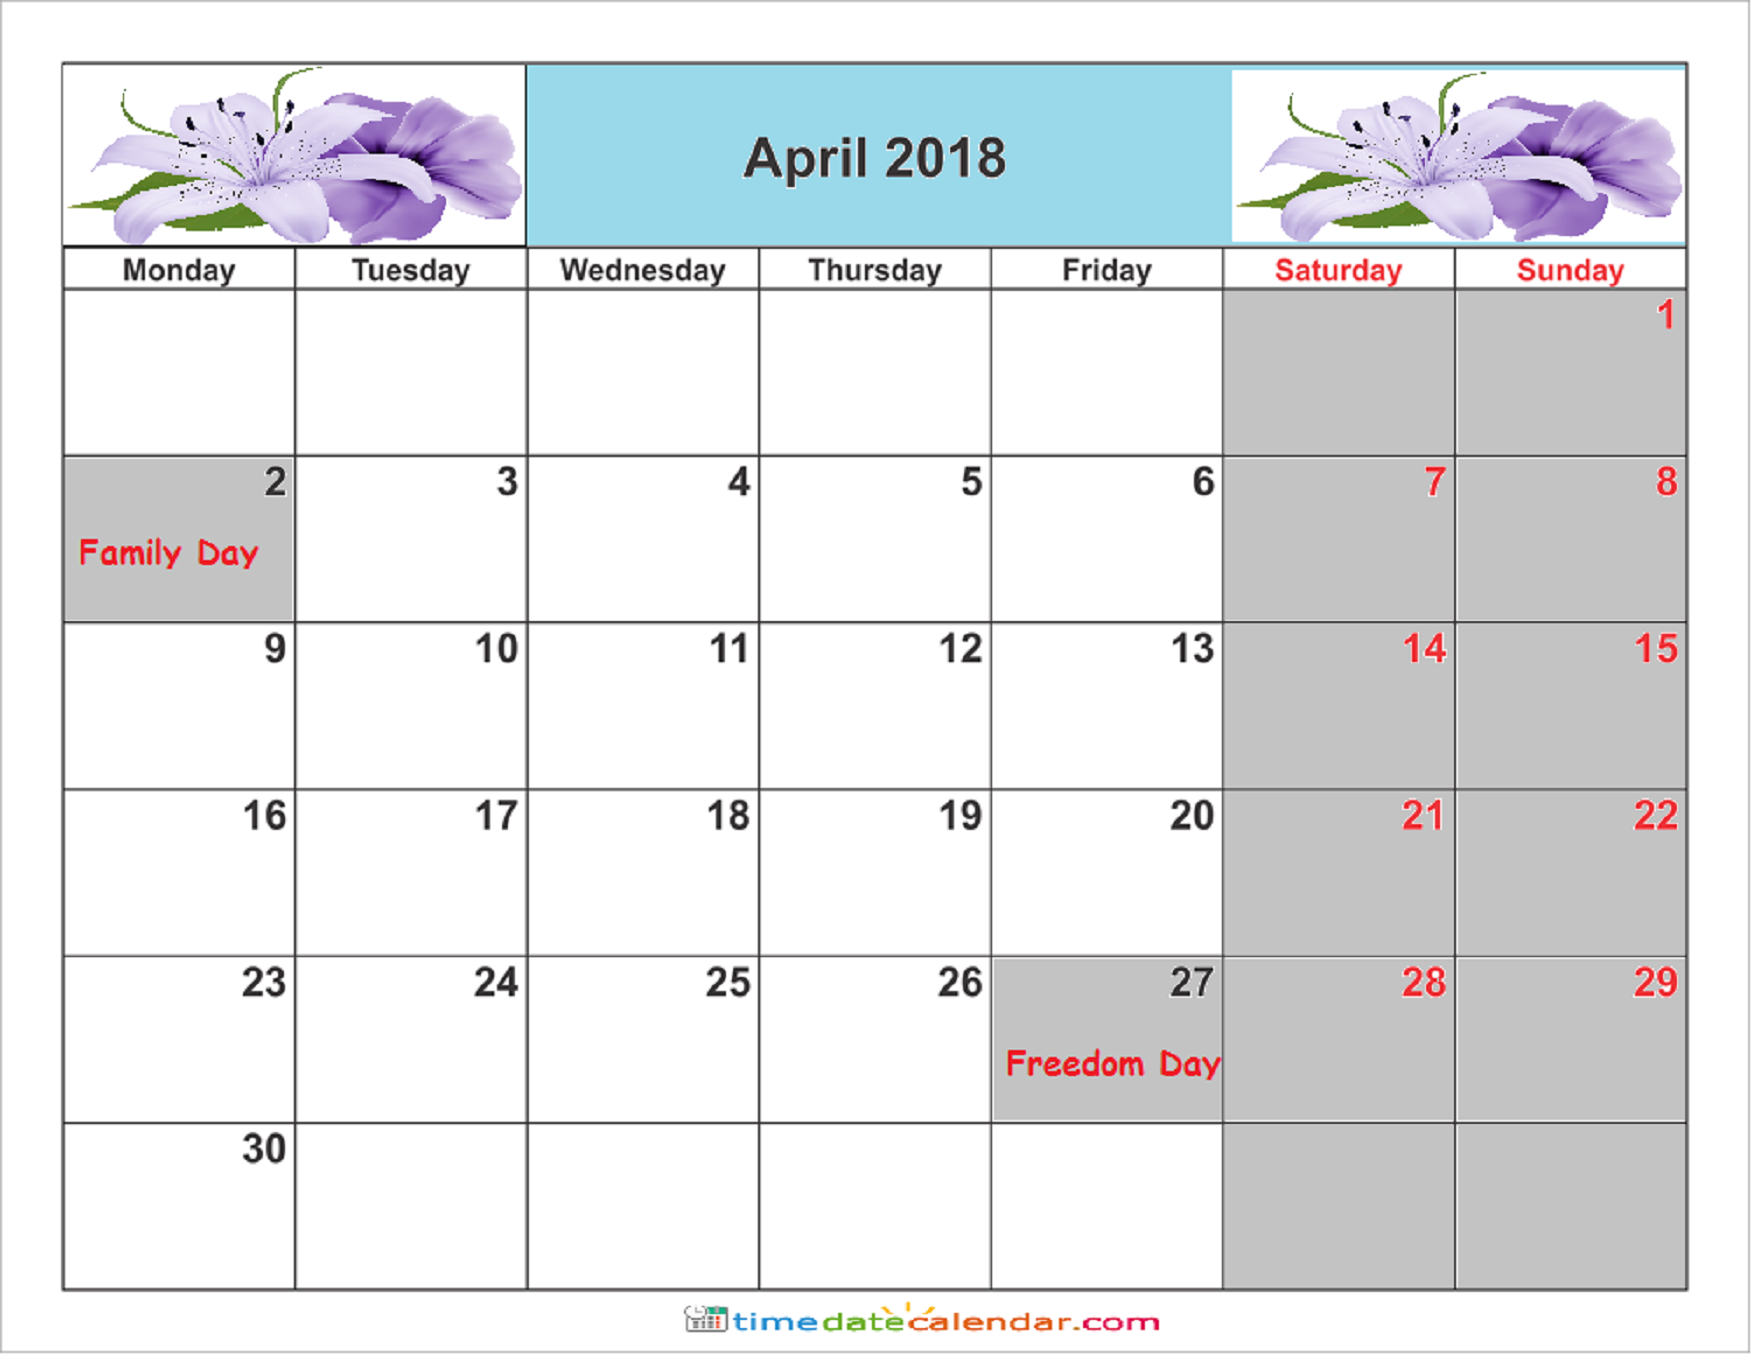 april 2018 calendar south africa free printable template